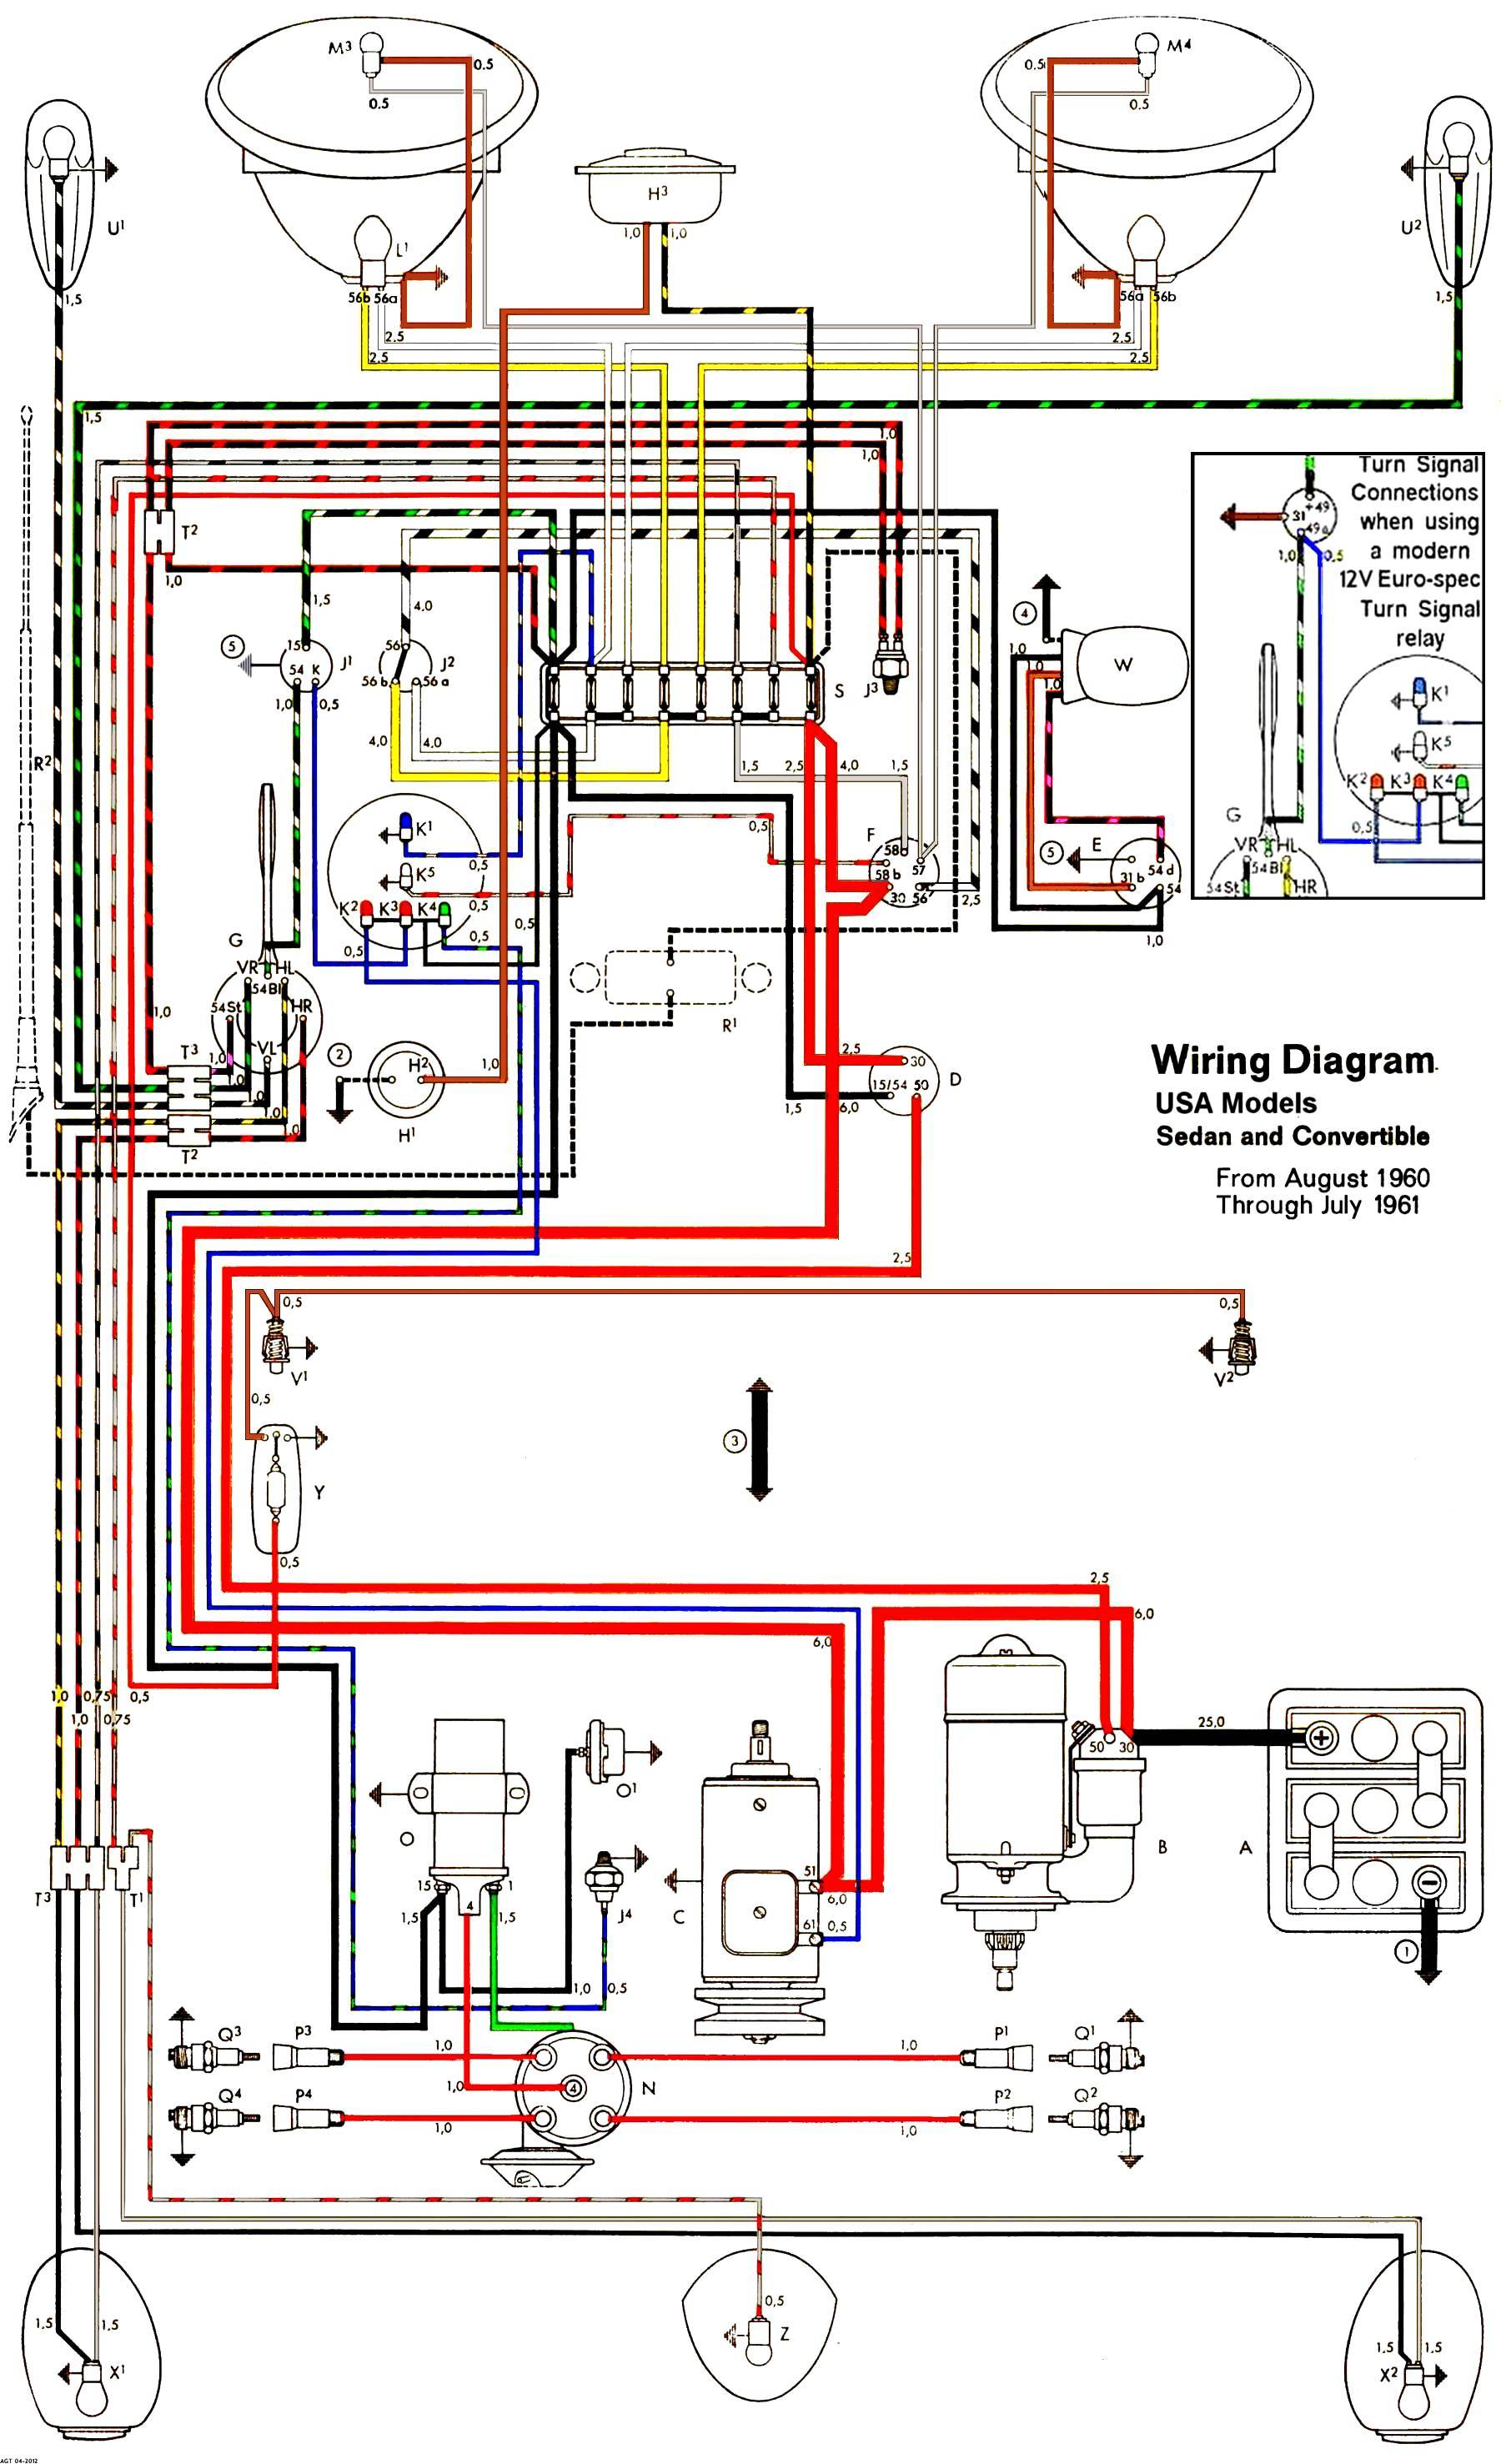 1974 Vw Beetle Lights Wire Diagrams Free Wiring Diagram For You 1975 Volkswagen 74 On Rh 4 17 Carrera Rennwelt De 1967